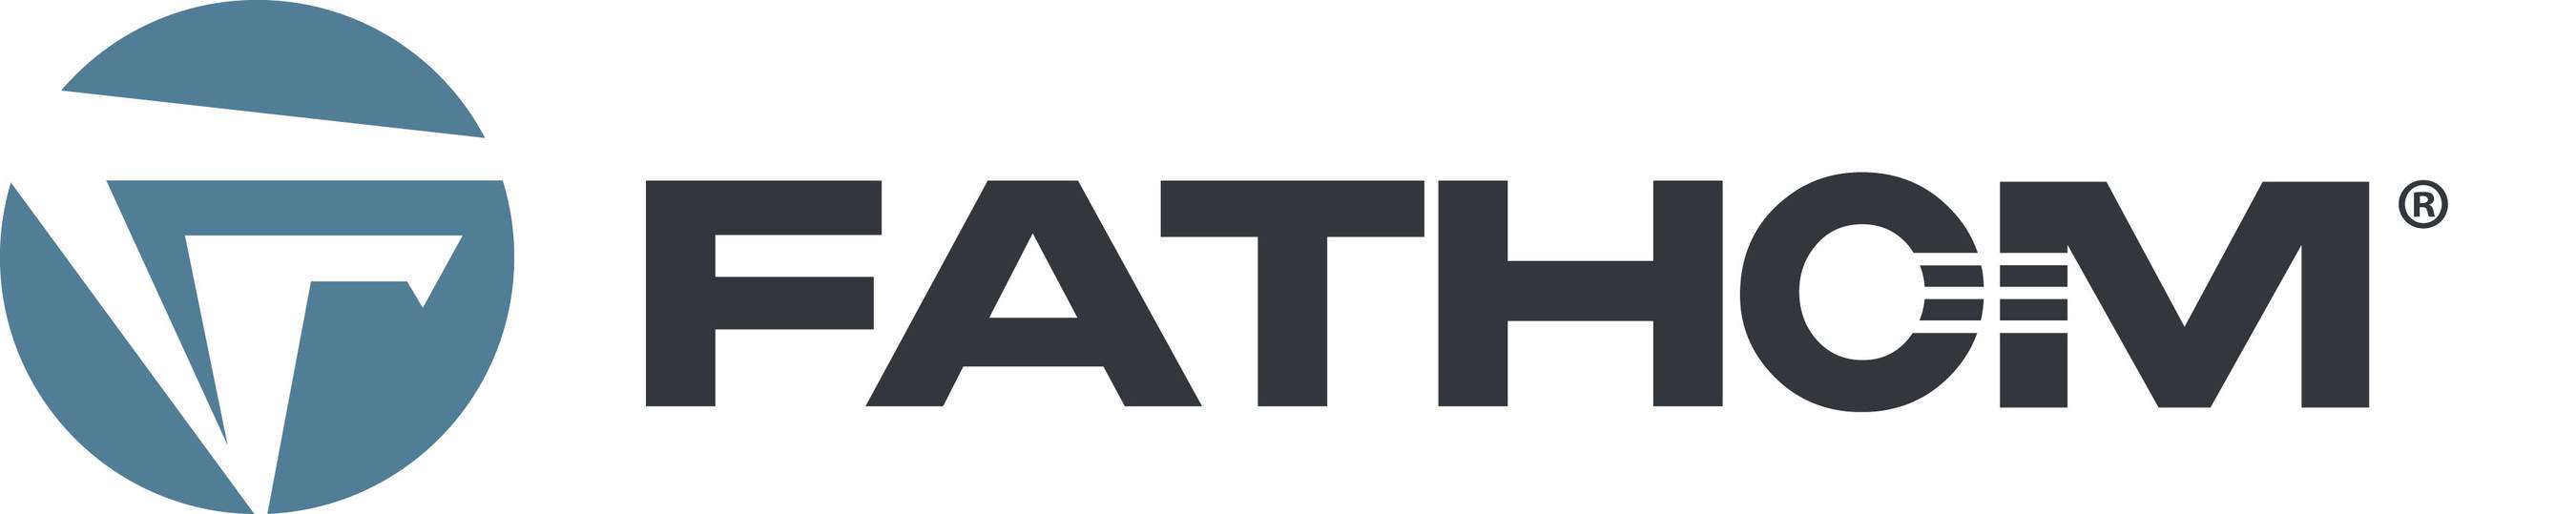 Fathom, Cleveland Marketing Agency, Obtains B Corp Certification for Positive Social Impact